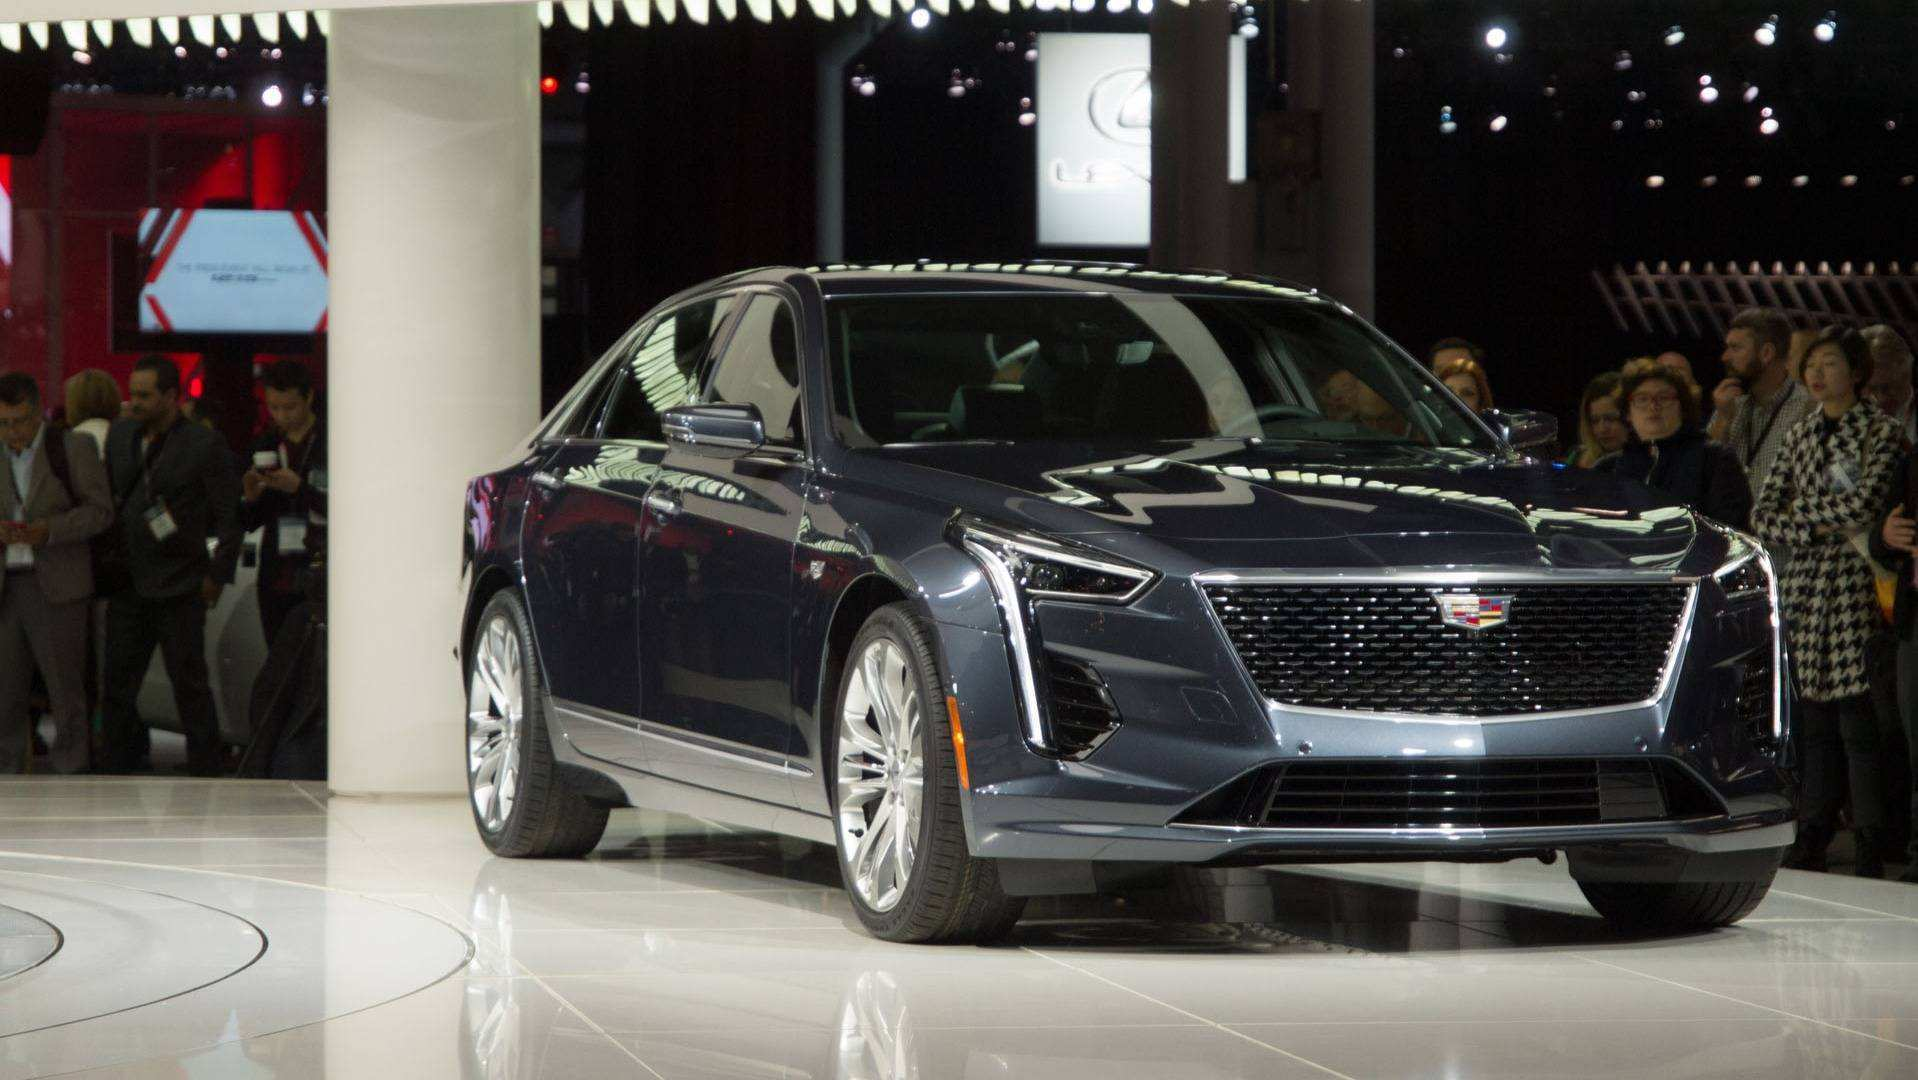 45 Best Review 2020 Cadillac Ct6 V8 Pictures by 2020 Cadillac Ct6 V8